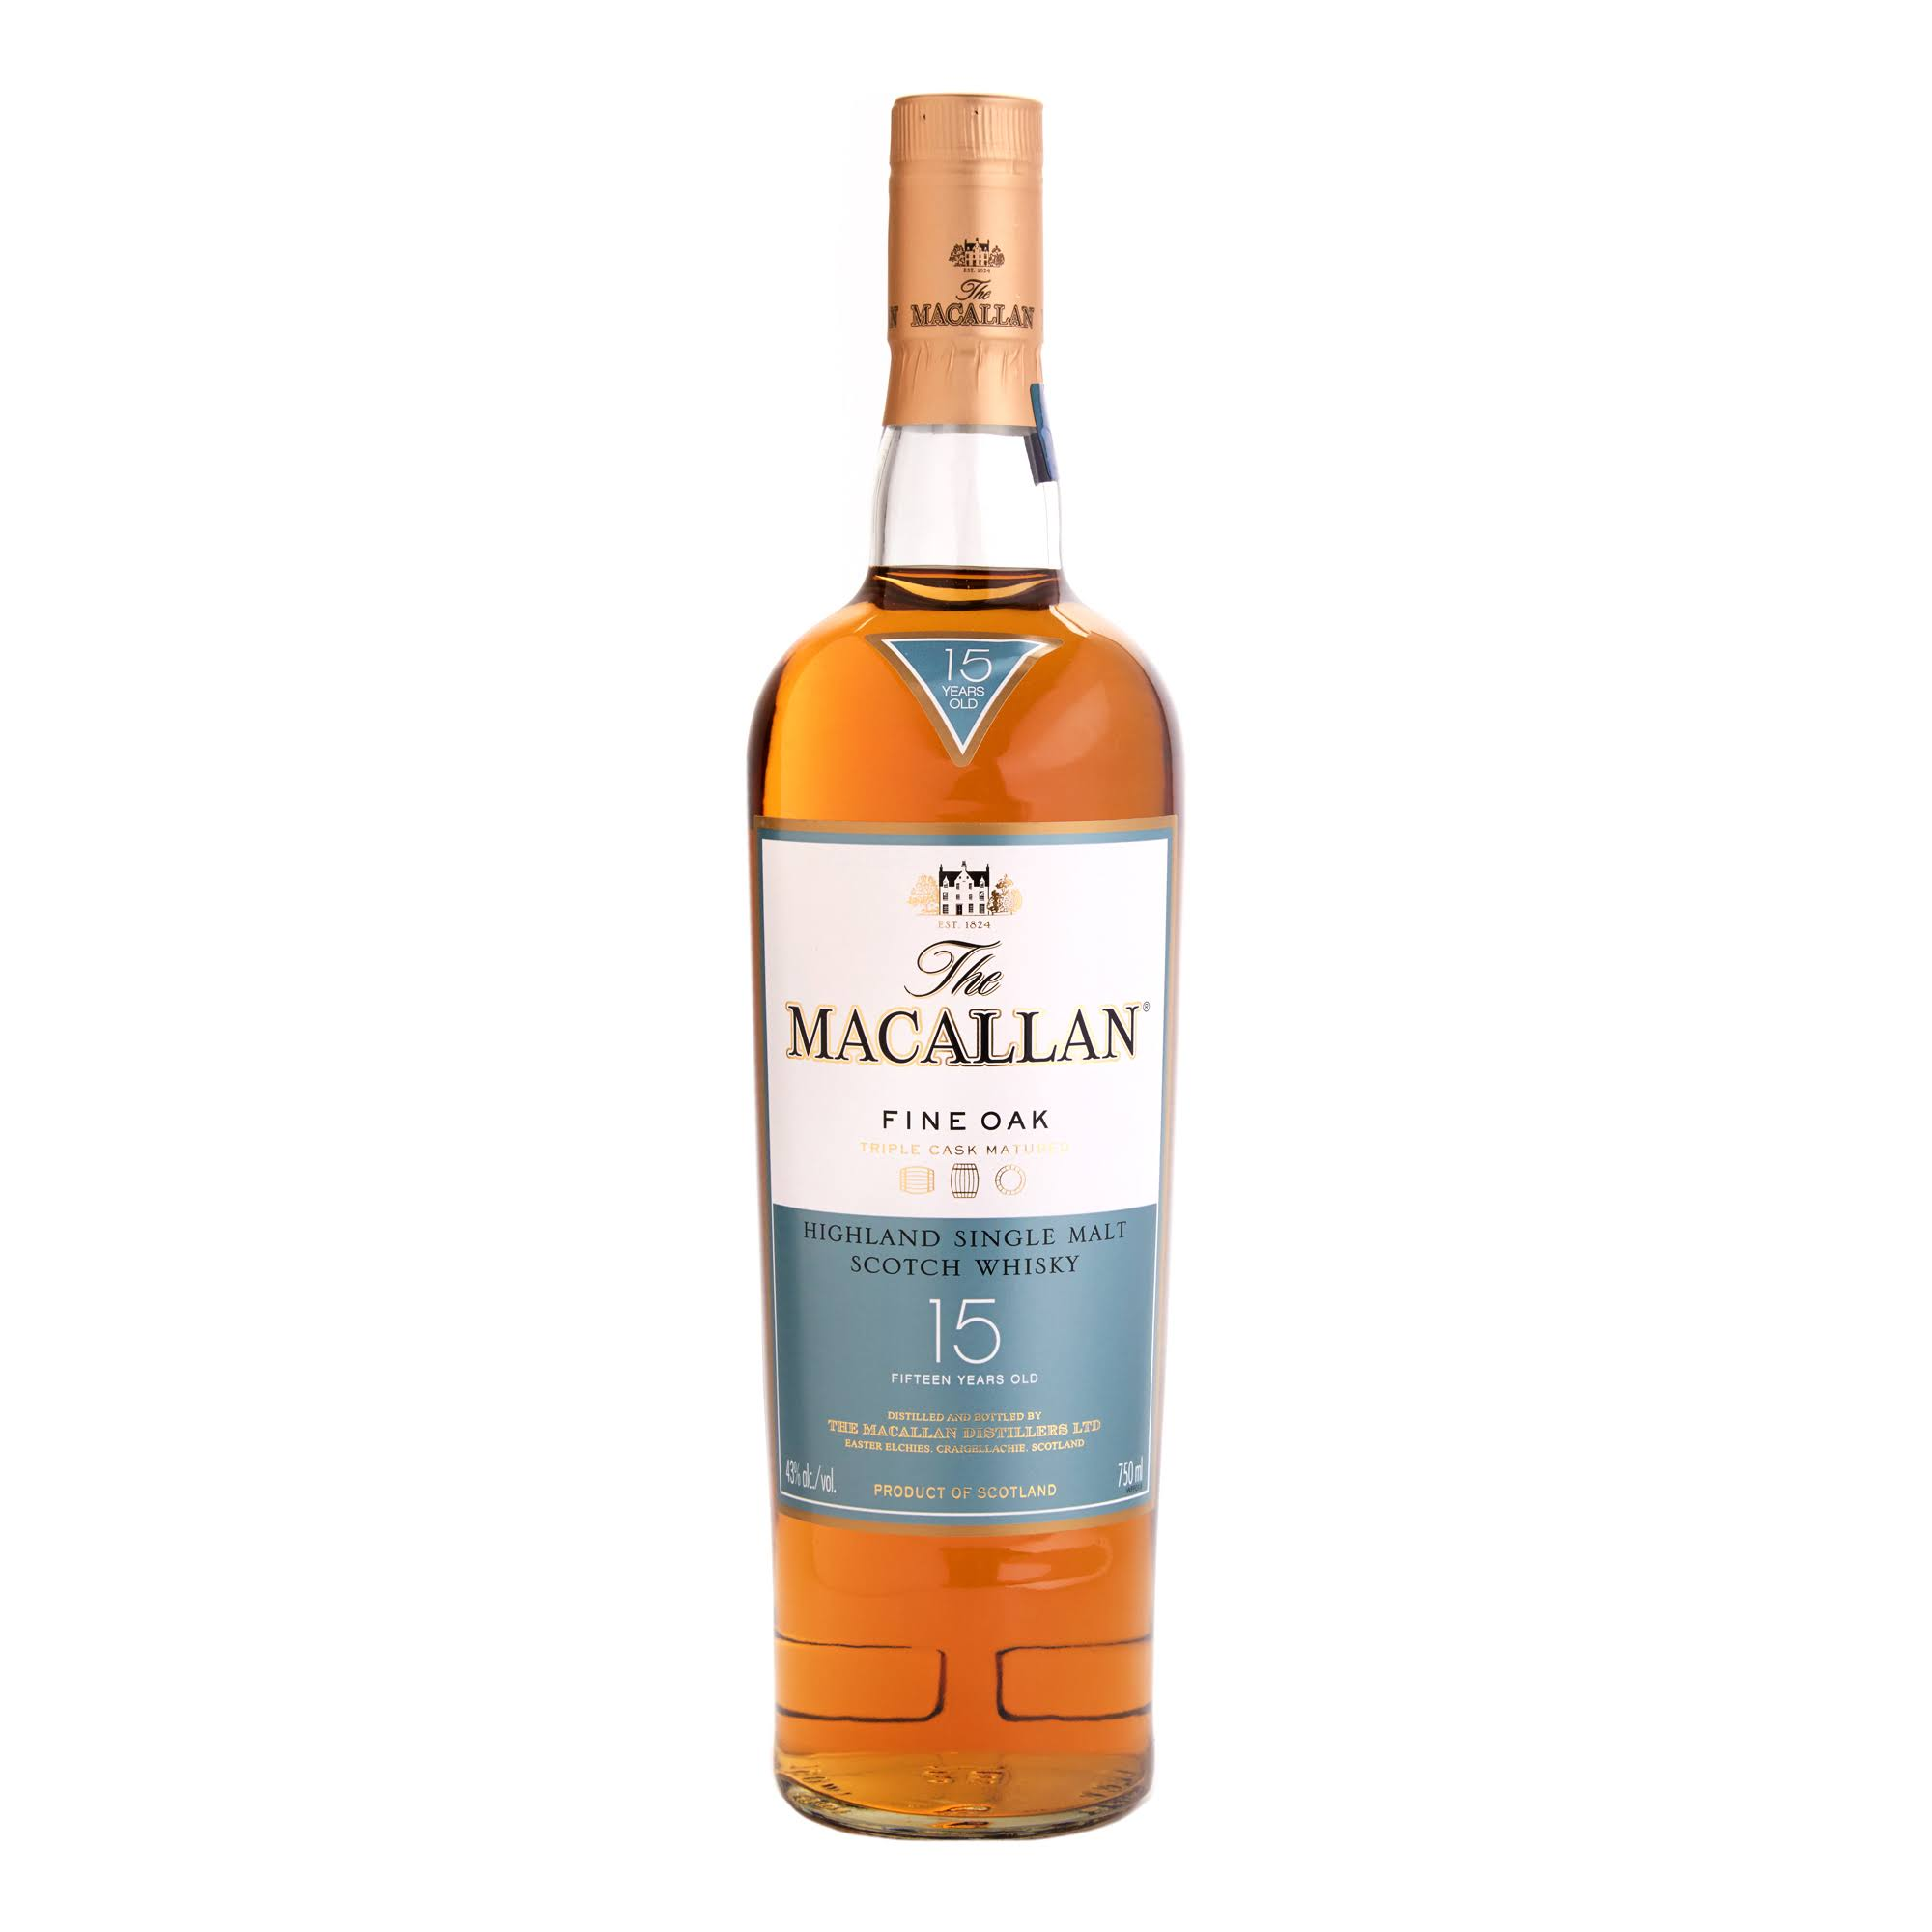 Macallan Fine Oak 15 Years Old Scotch Whiskey - 700ml